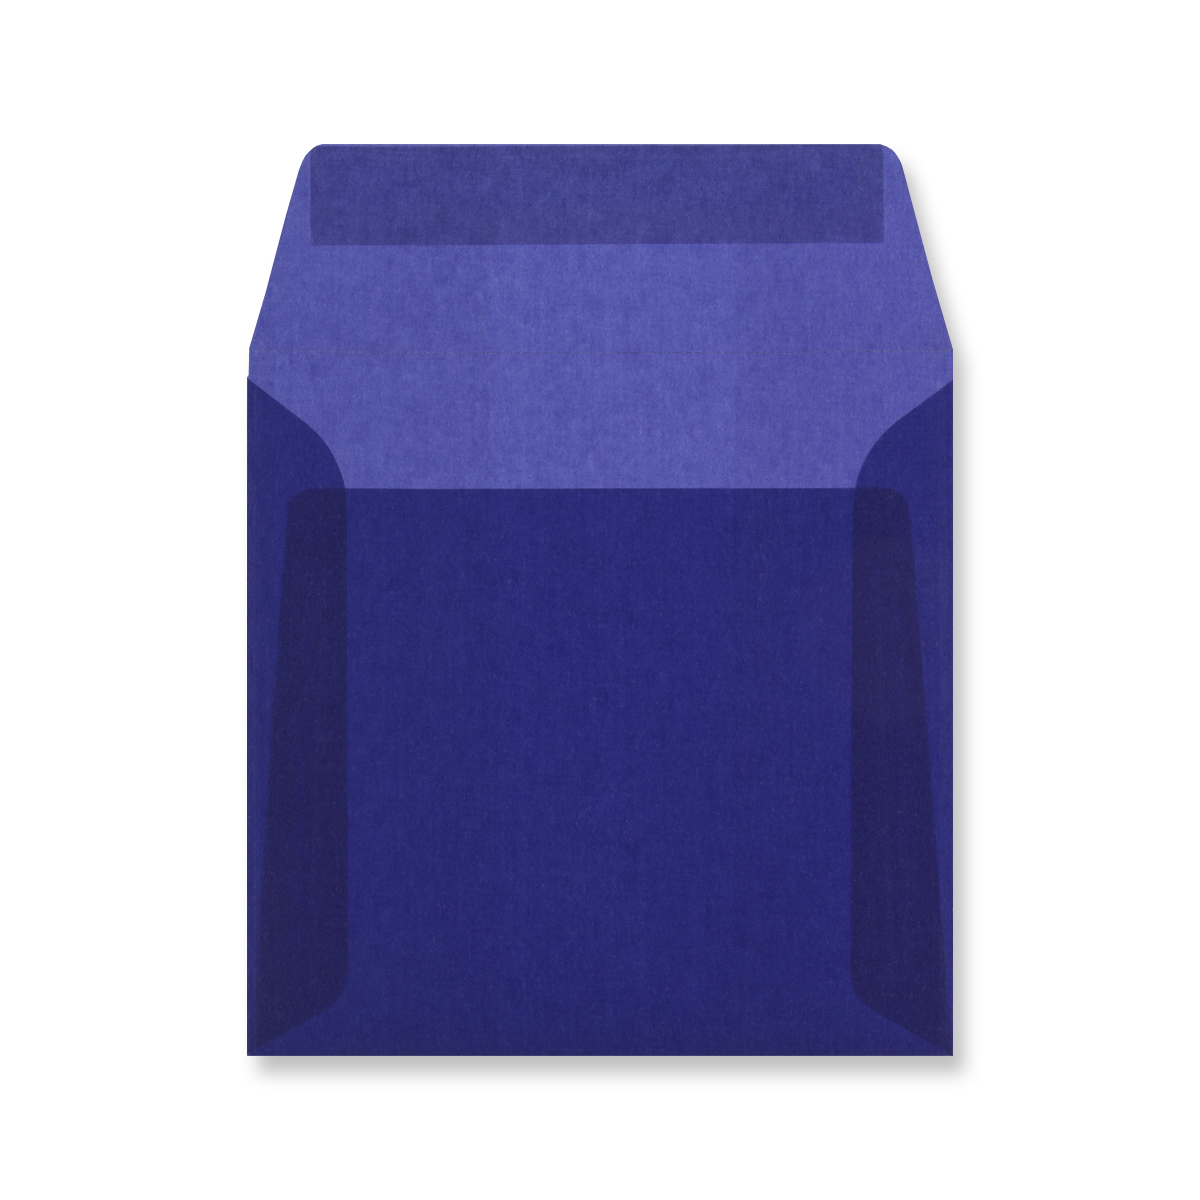 160 x 160MM DARK BLUE TRANSLUCENT ENVELOPES